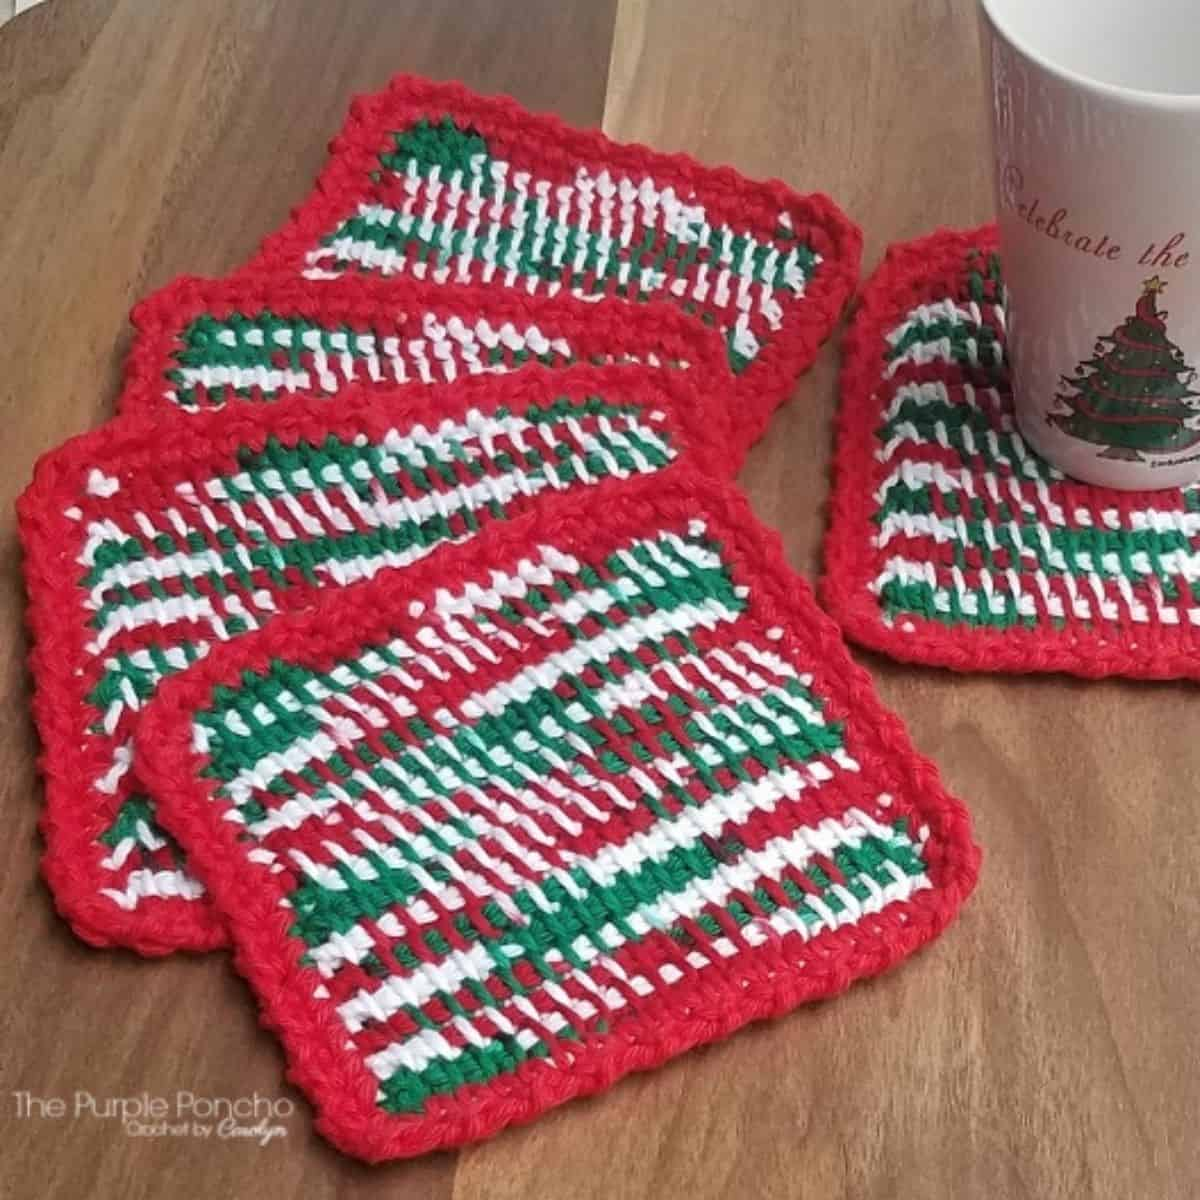 striped green red and white crochet coasters with a coffee mug on one coaster